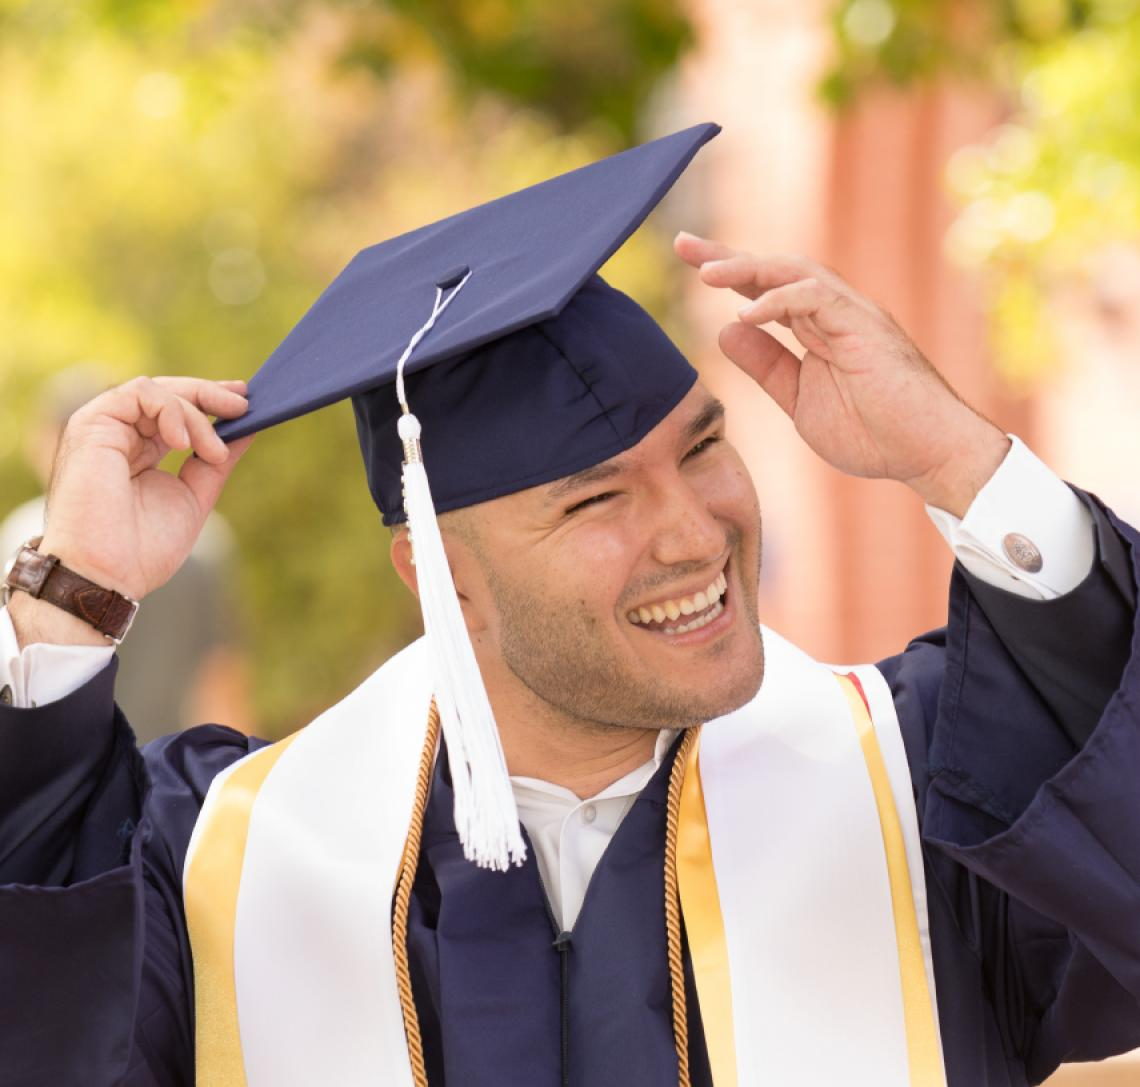 Photo of a student smiling as he adjusts his graduation cap